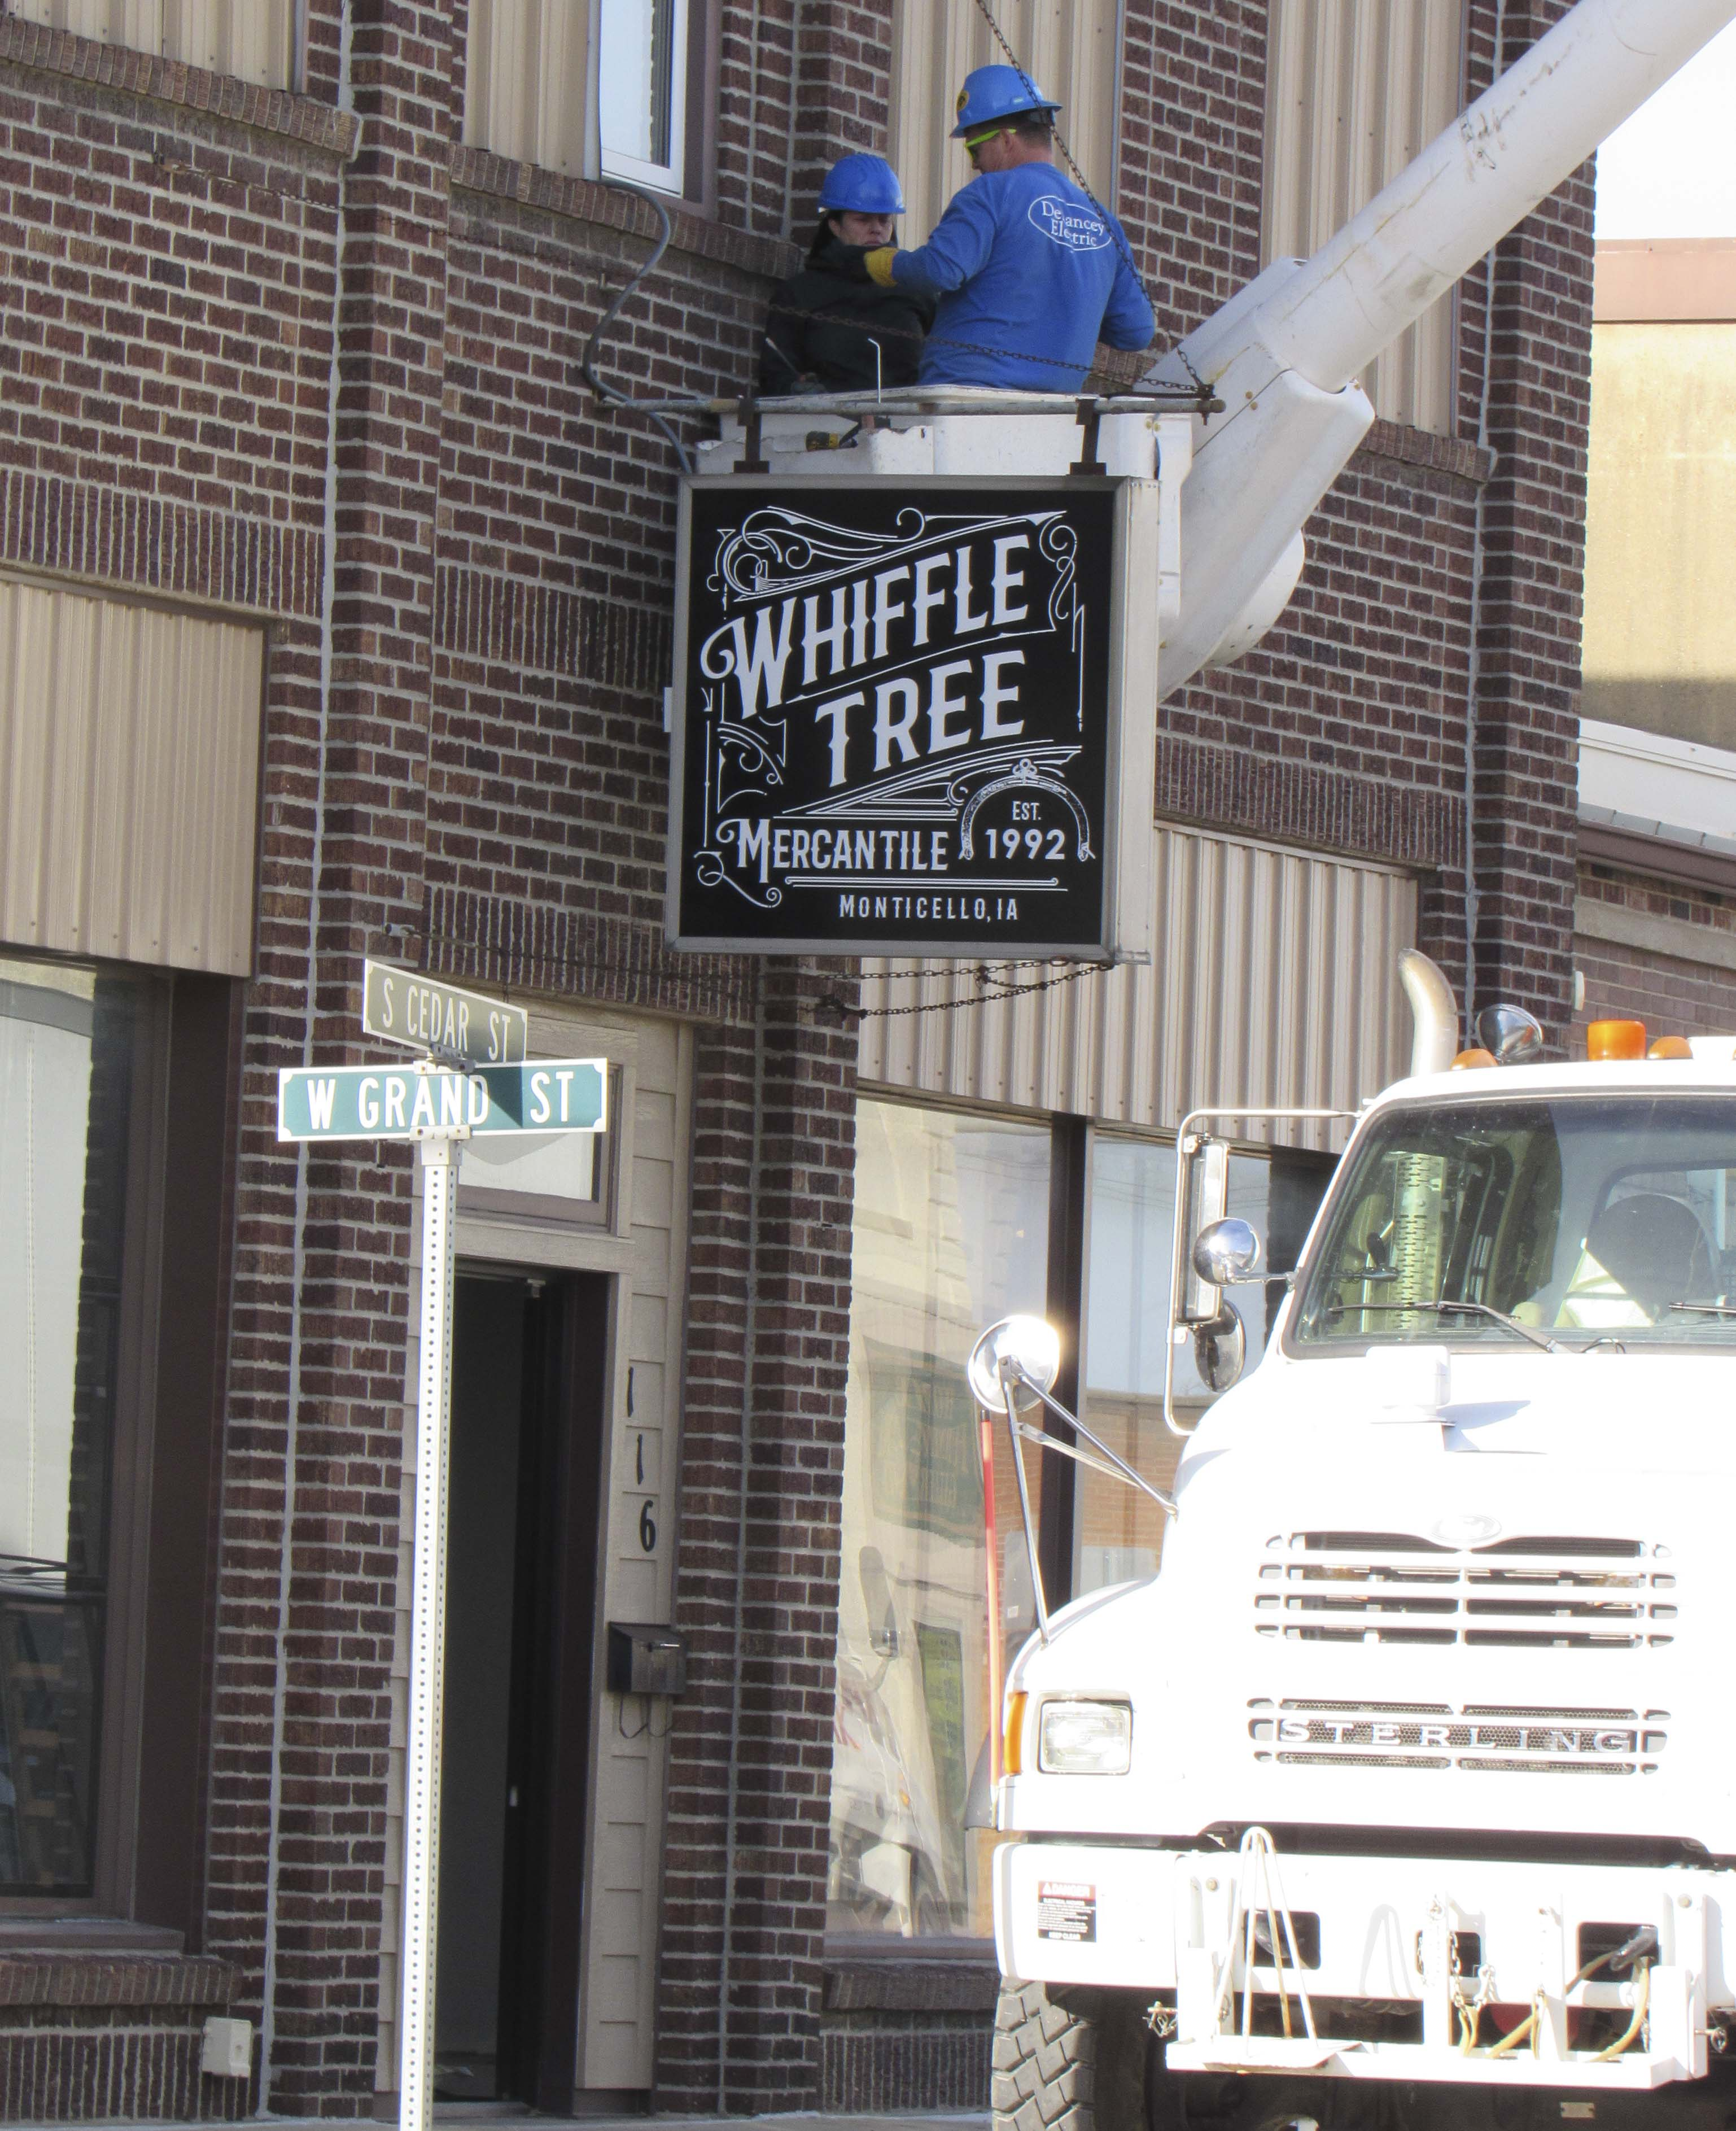 DeLancey Electric in Anamosa installs the new sign outside of Whiffle Tree Mercantile in downtown Monticello. The long-time business owned by Leroy Mootz was recently purchased by Bobby Krum of Amber. The building is currently undergoing some extensive renovations before it reopens to the public. (Photo by Kim Brooks)